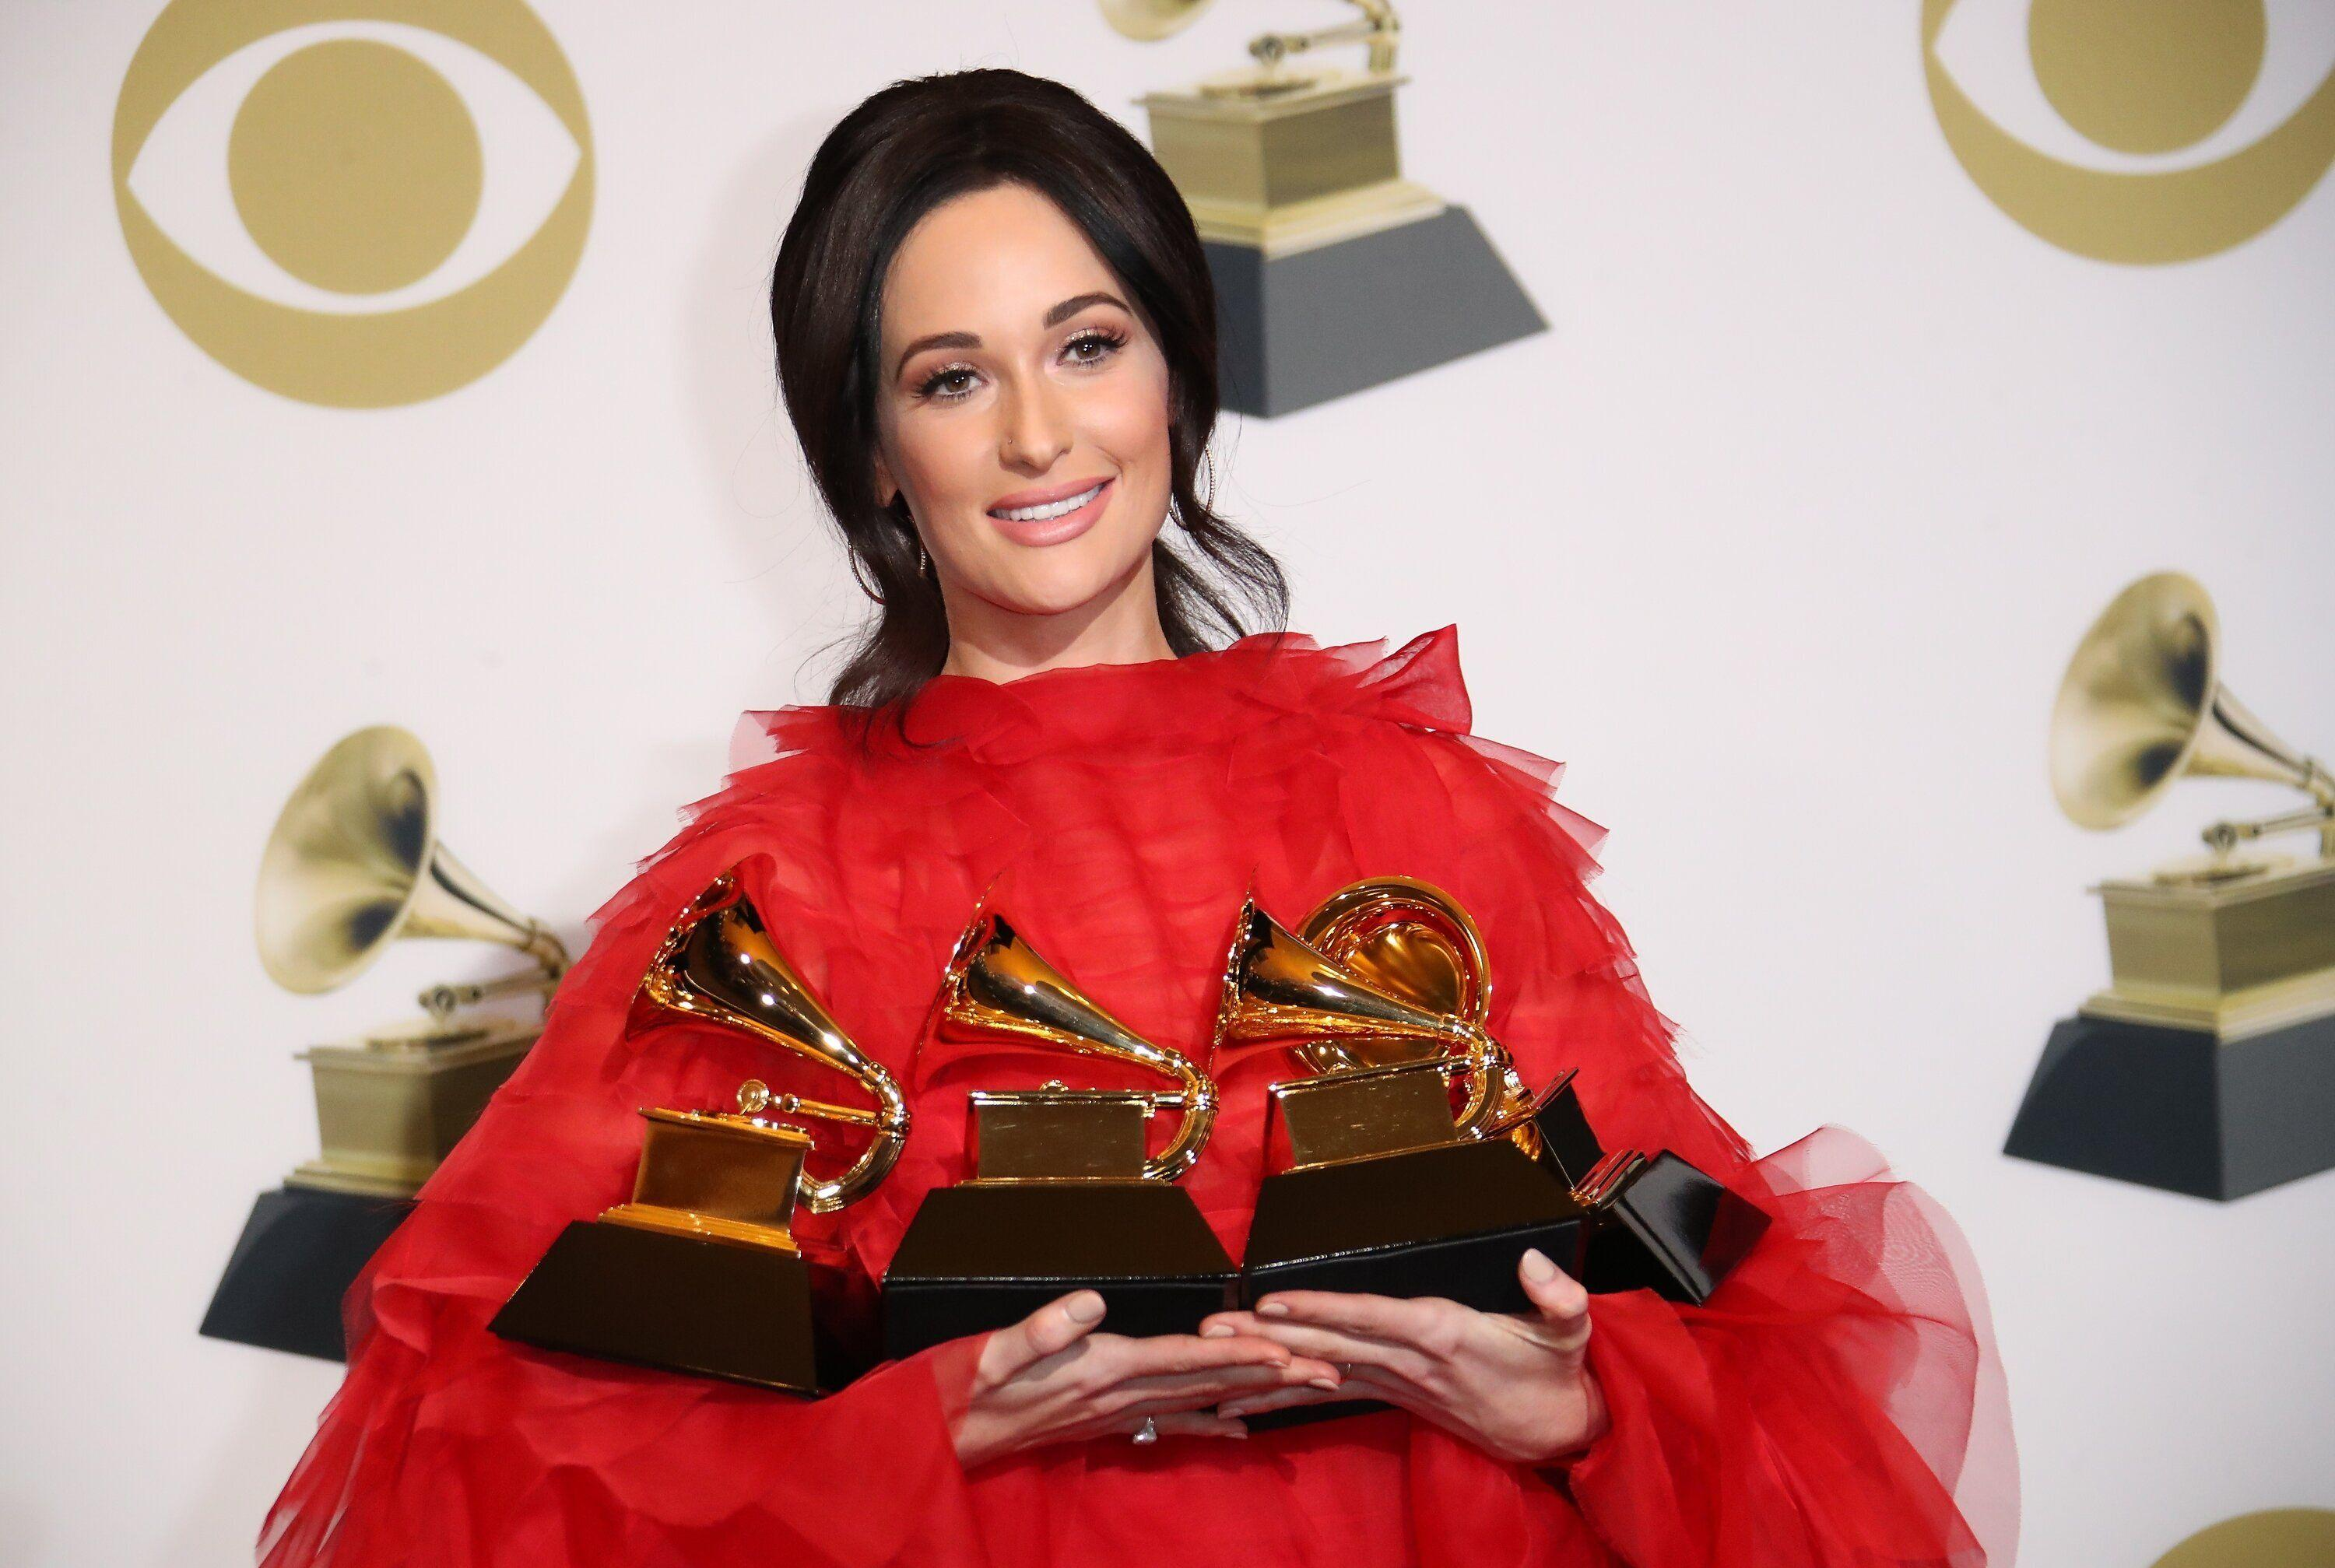 Kacey Musgraves takes jab at Alabama senators over abortion ban: What happens when they knock up their mistresses?